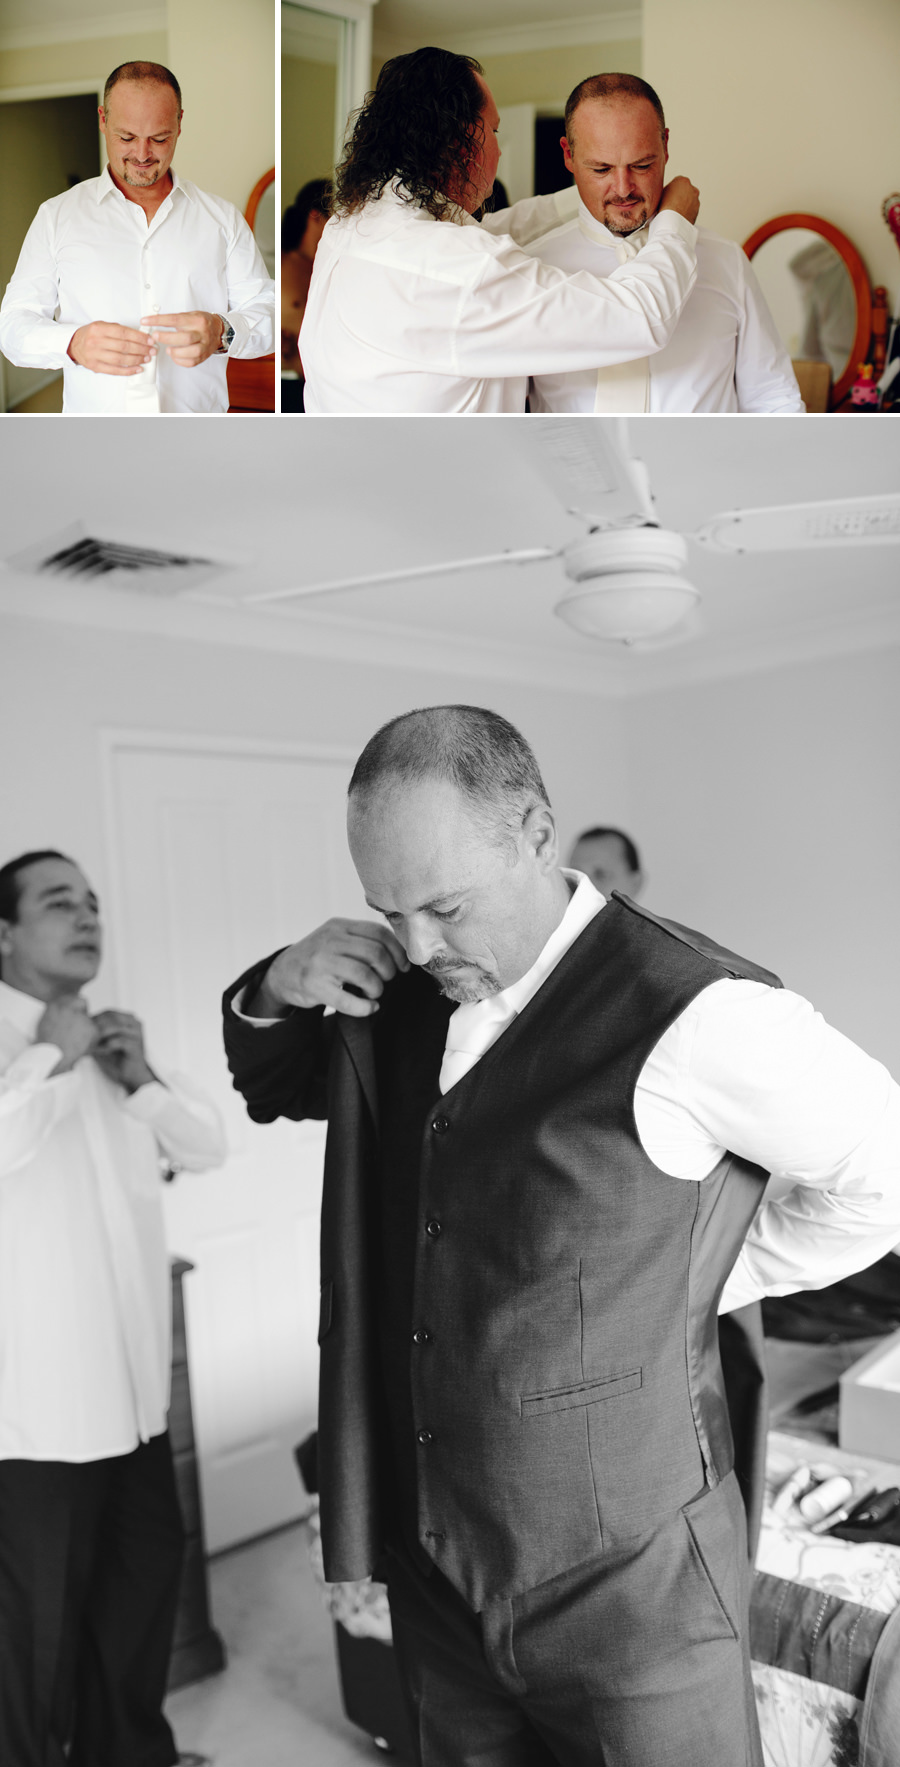 Photojournalistic Wedding Photographers: Groom getting ready